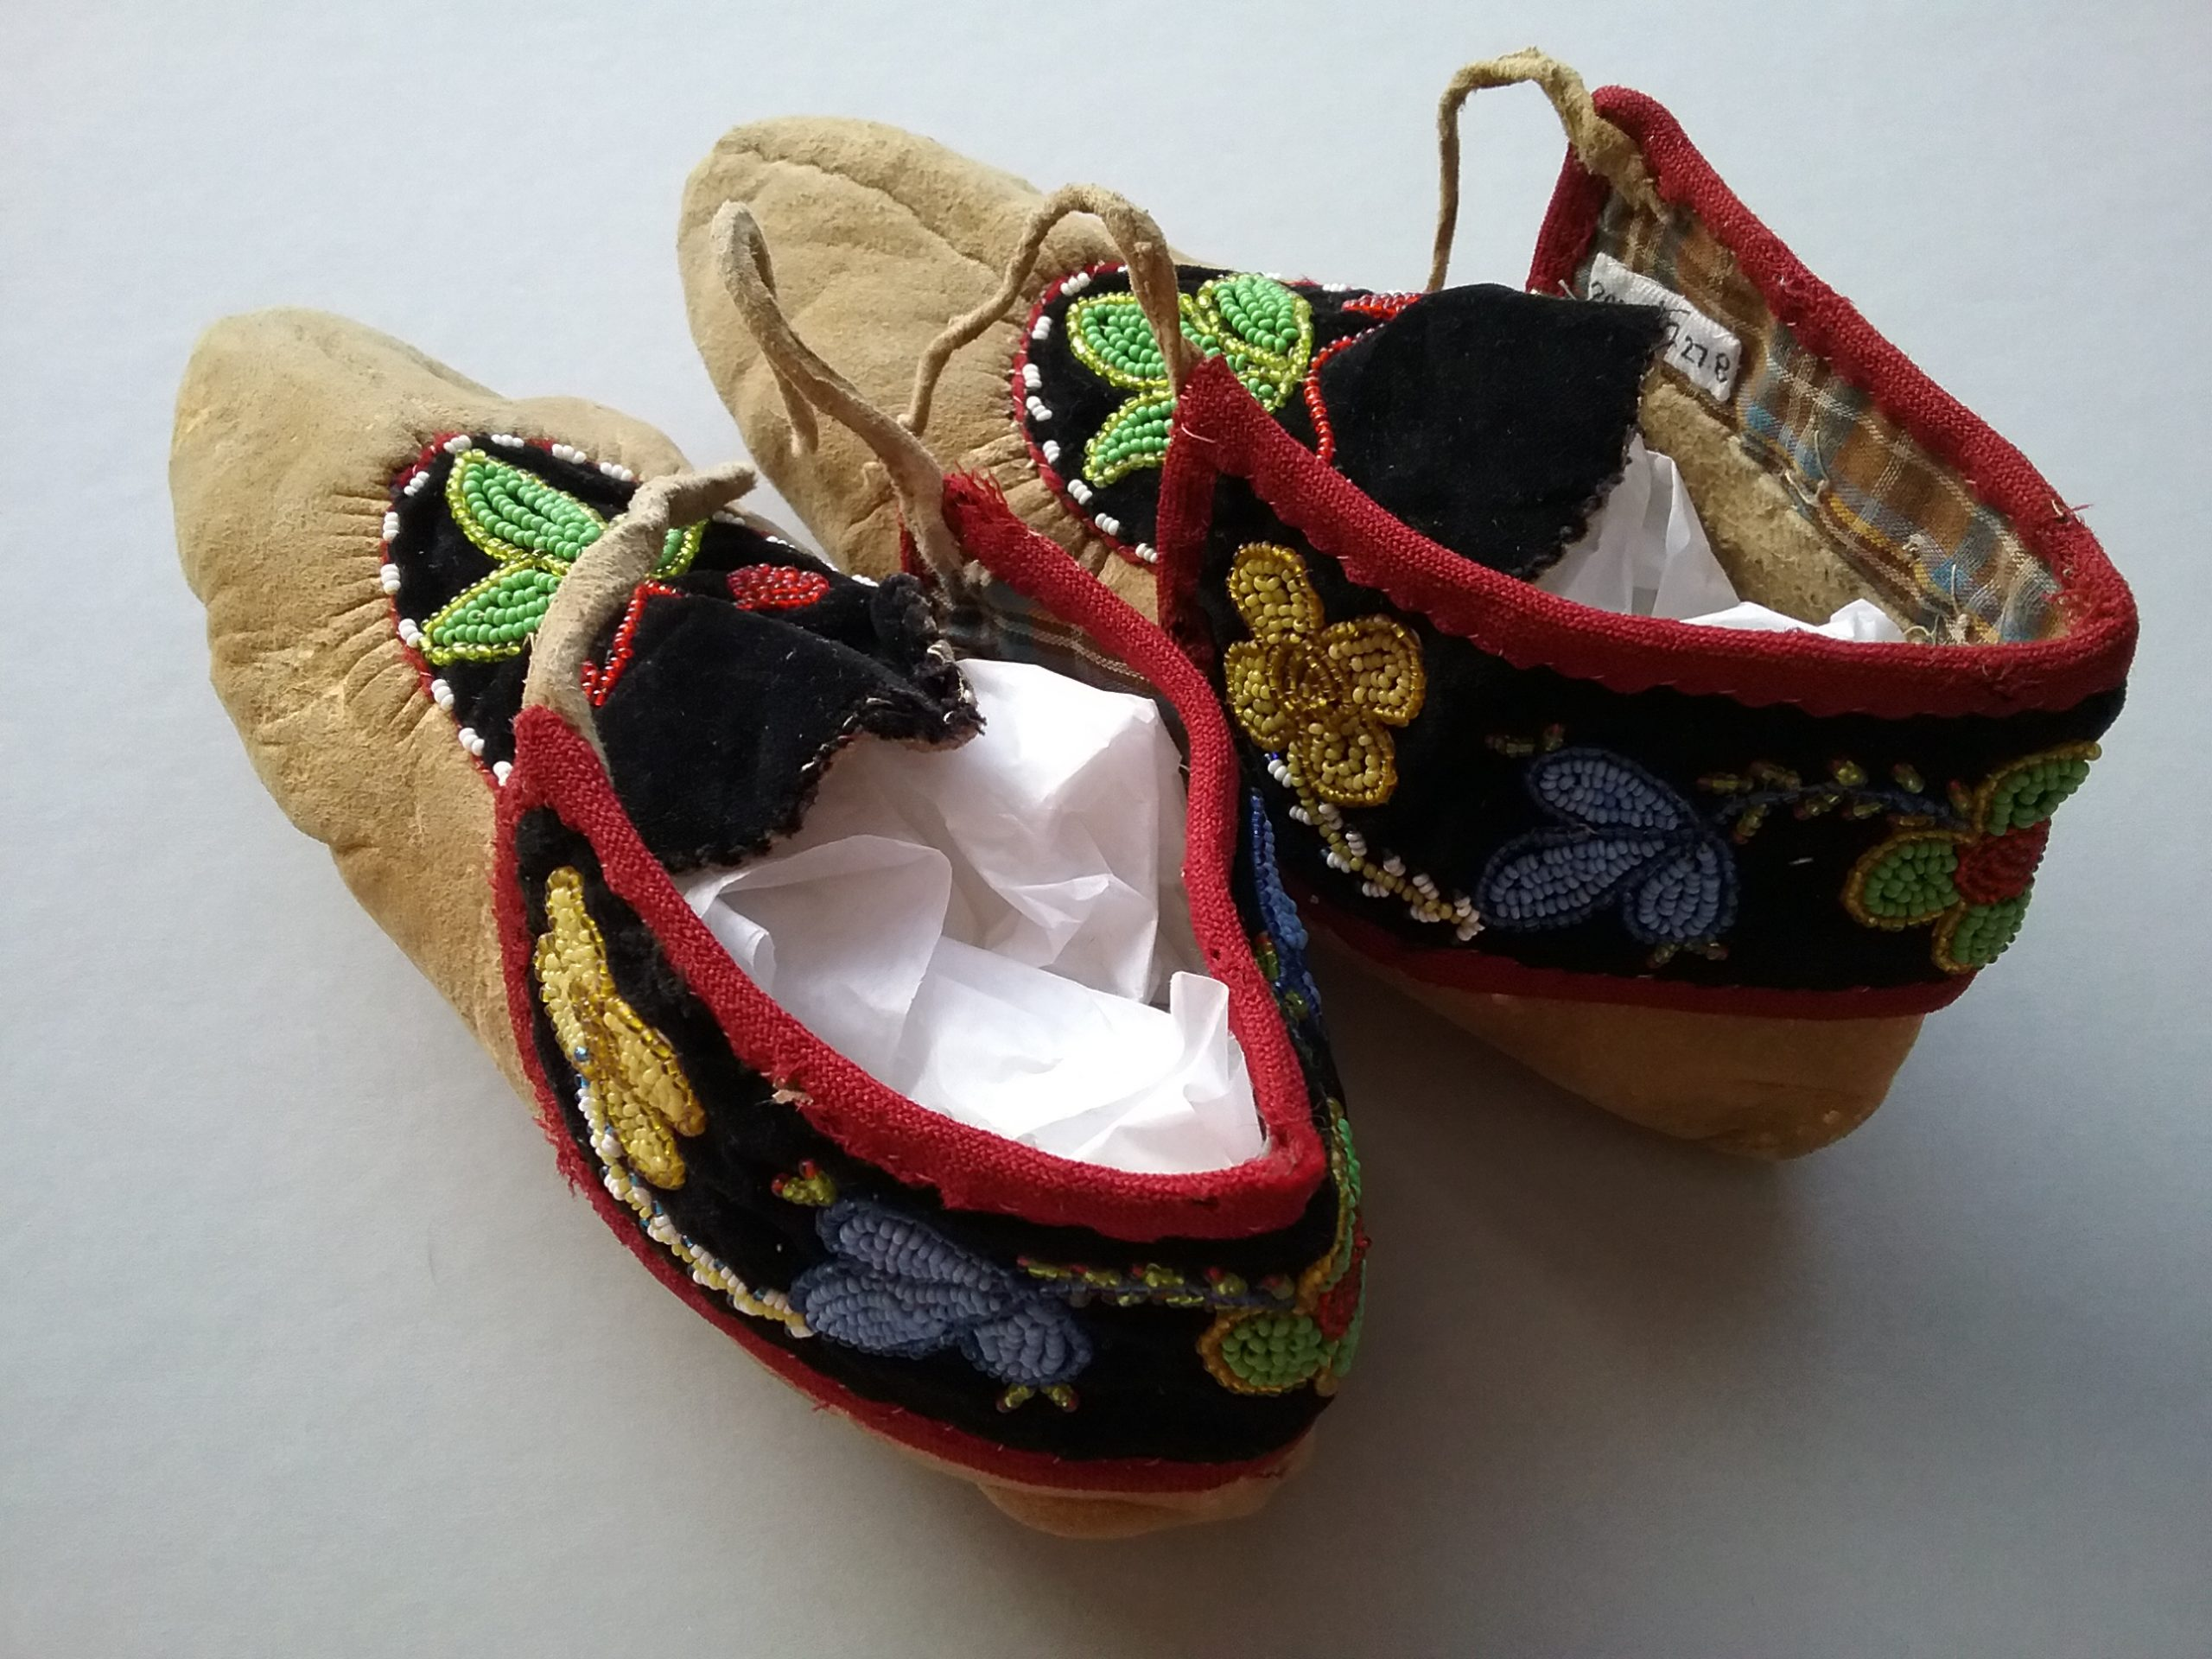 Ojibwe leather moccasins featuring spot-stitch applique beading. Artist unknown. Donated by Katie Jongewaard. MCHS collections, #2005.97.27a&b